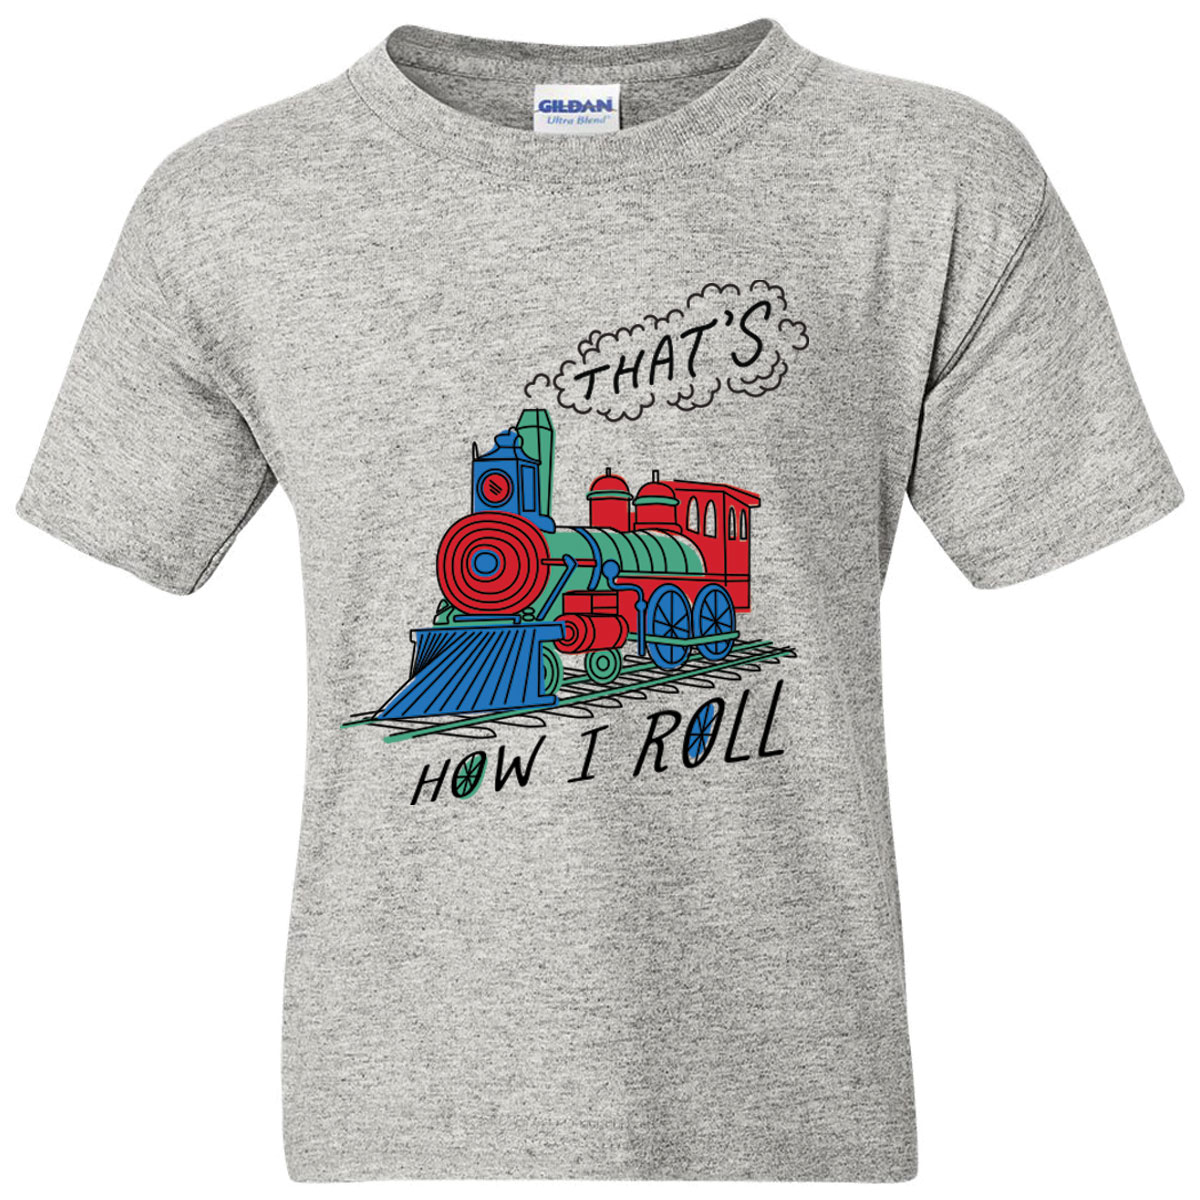 That's How I Roll Toddler & Youth Tee Shirt,03/906T4